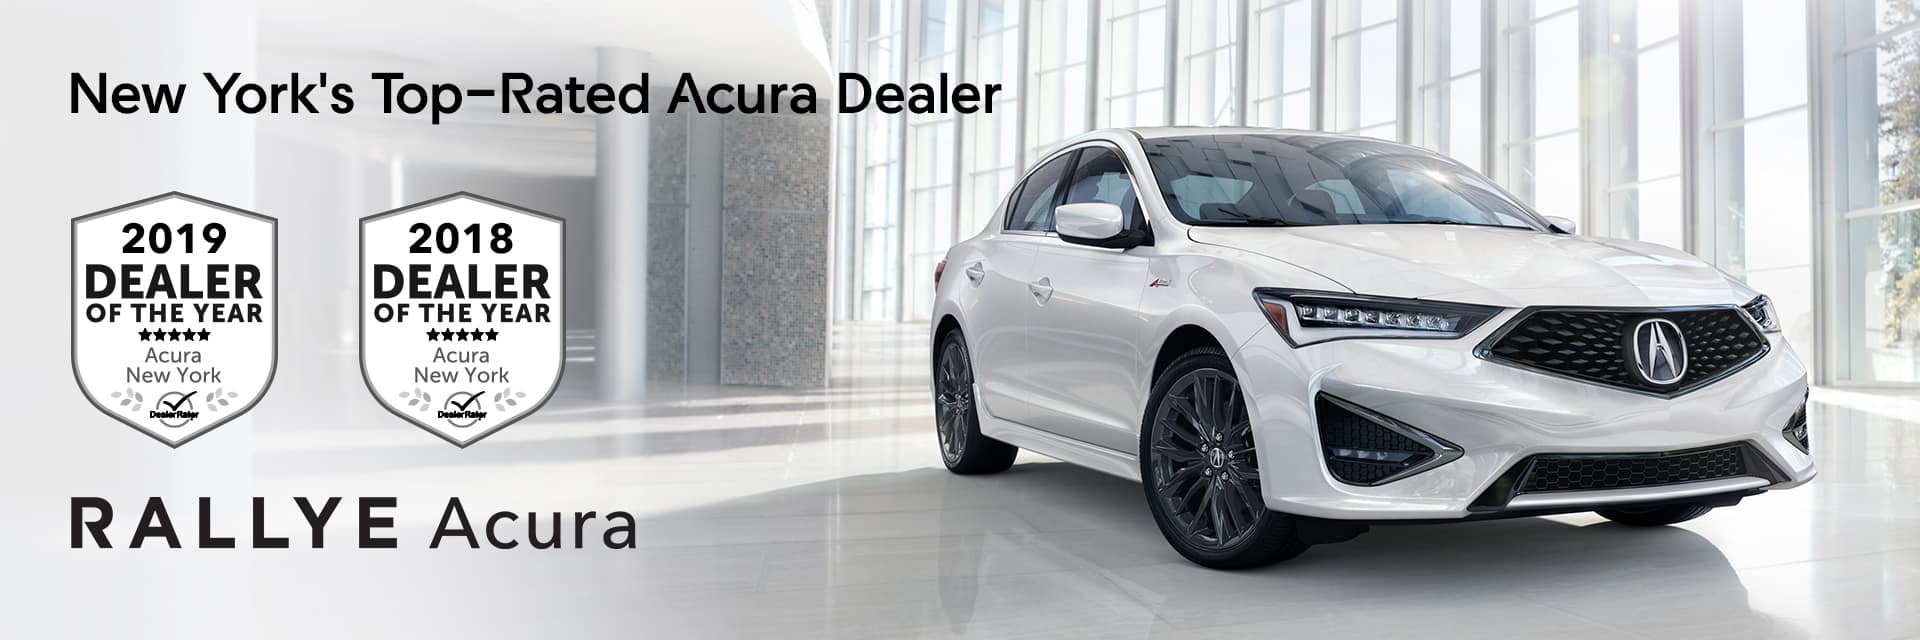 New York's Top-Rated Acura